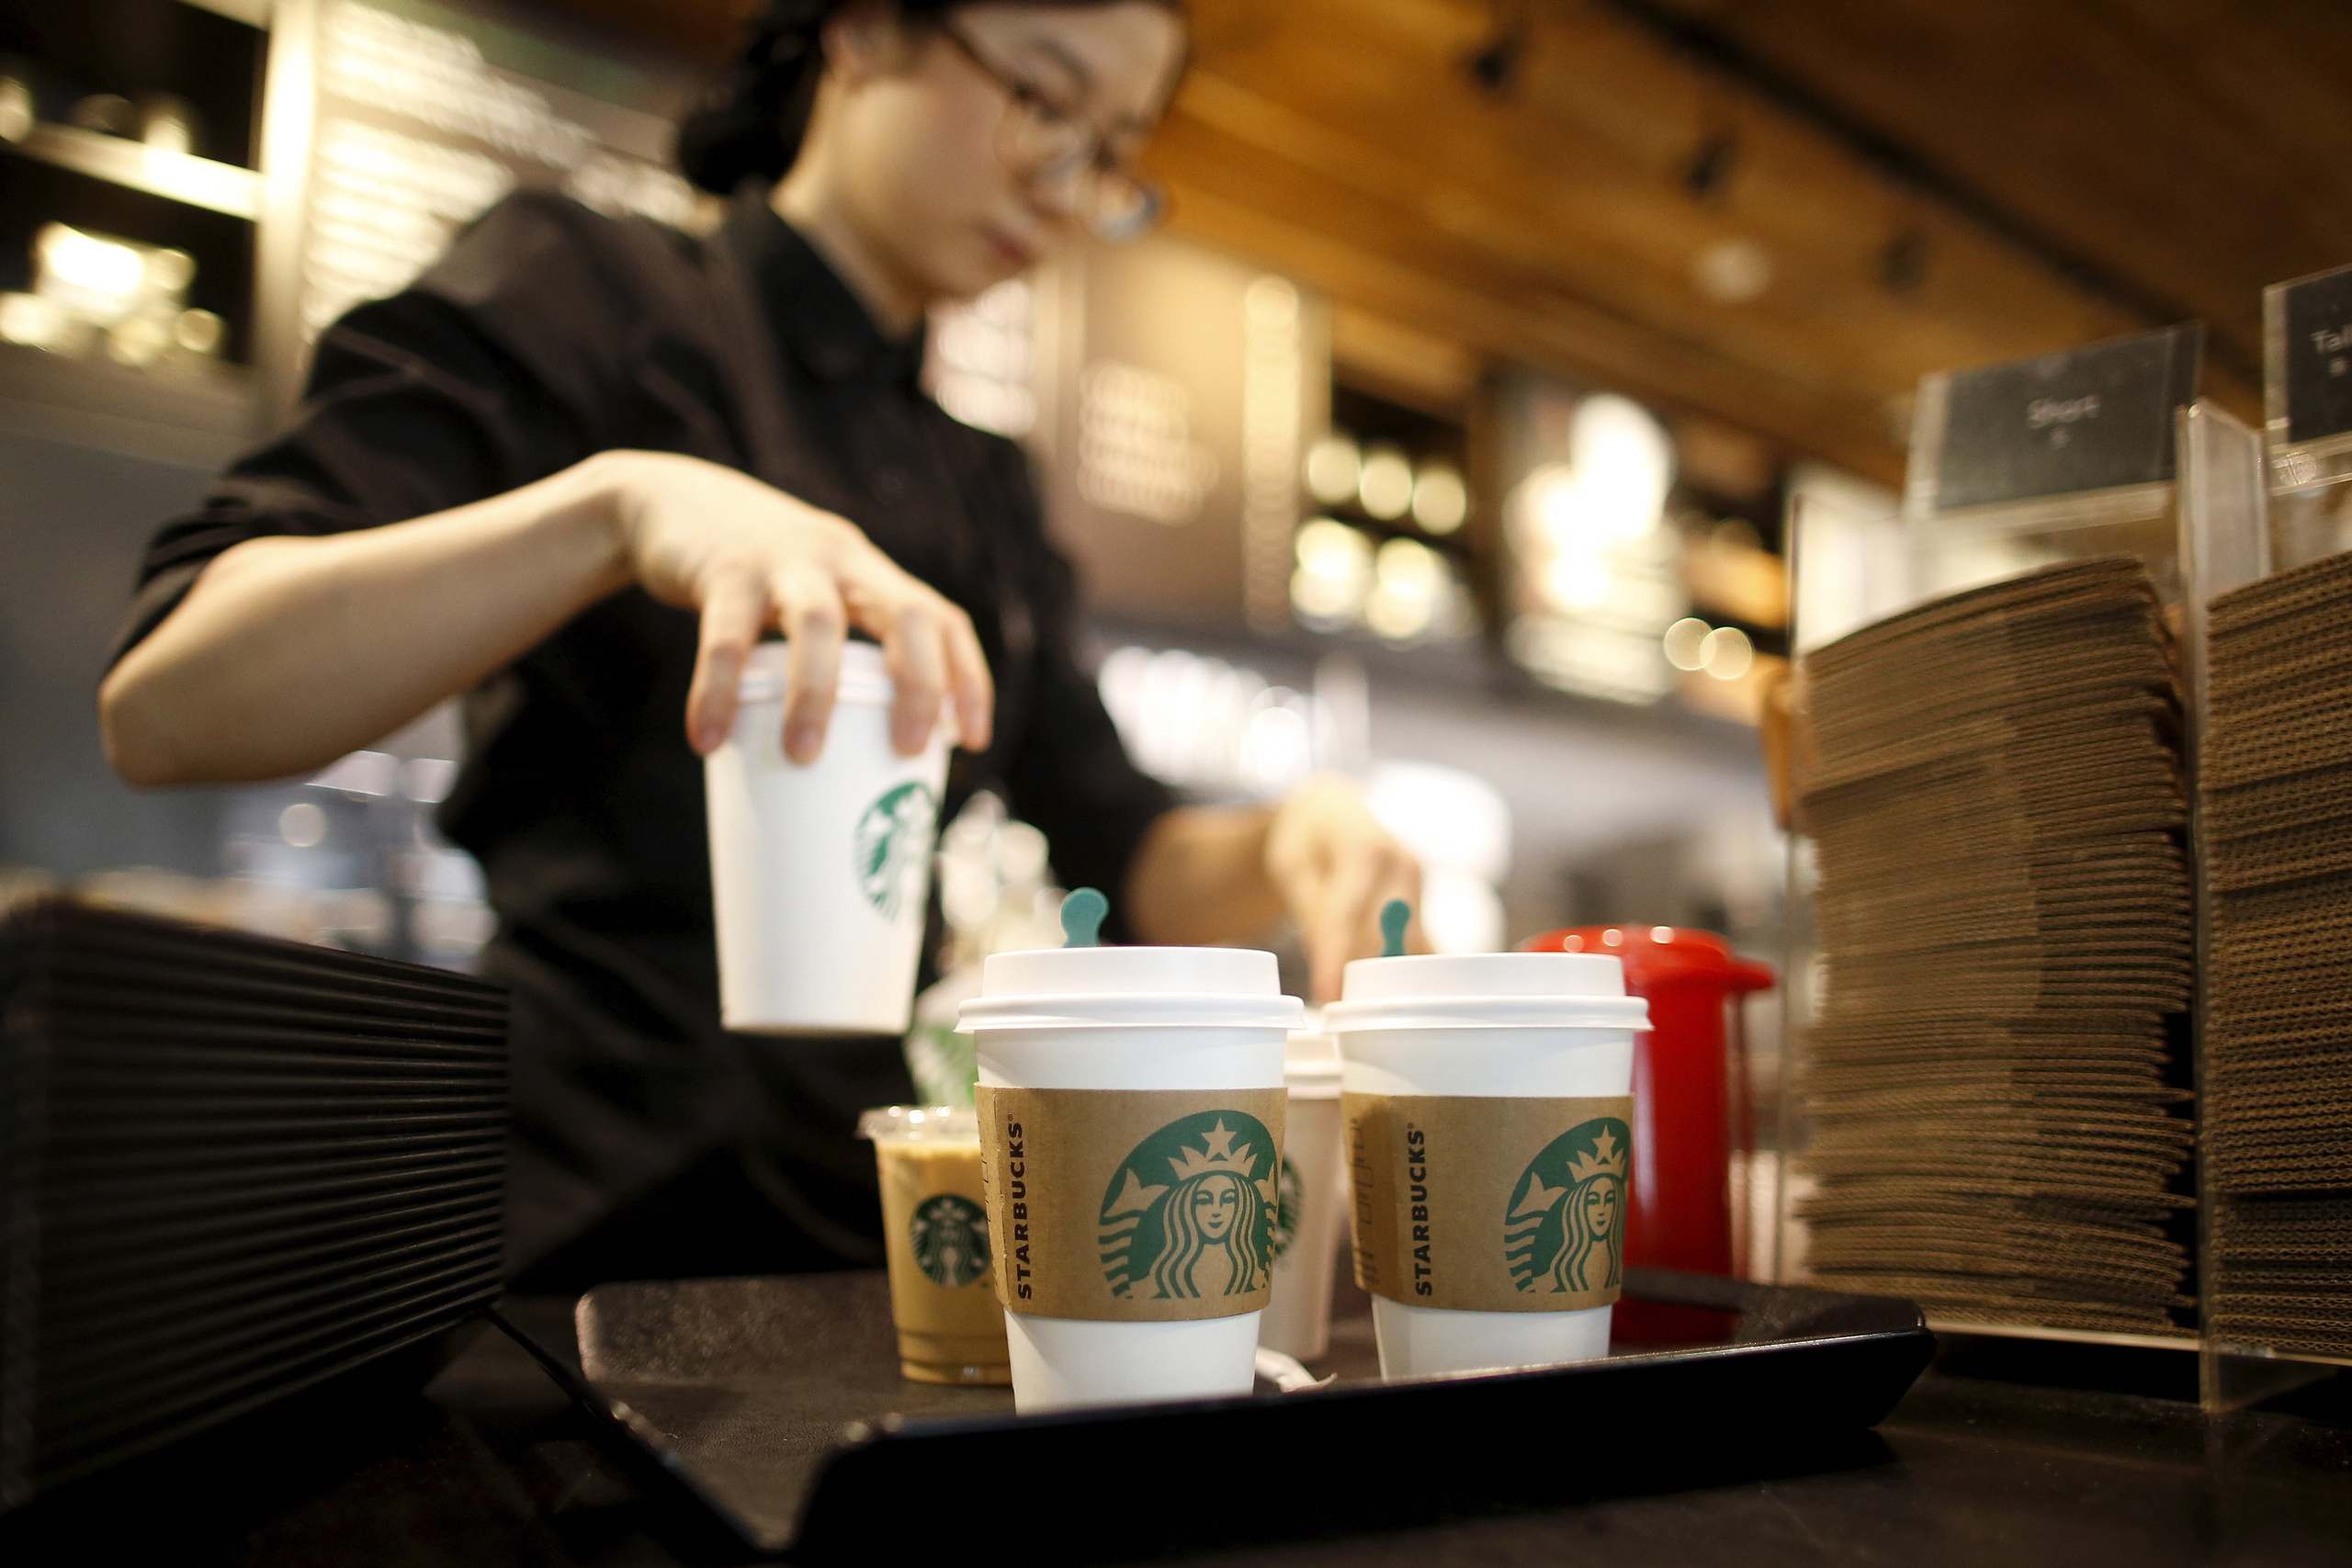 A staff serves beverages at a Starbucks coffee shop in Seoul on Mar. 7, 2016.